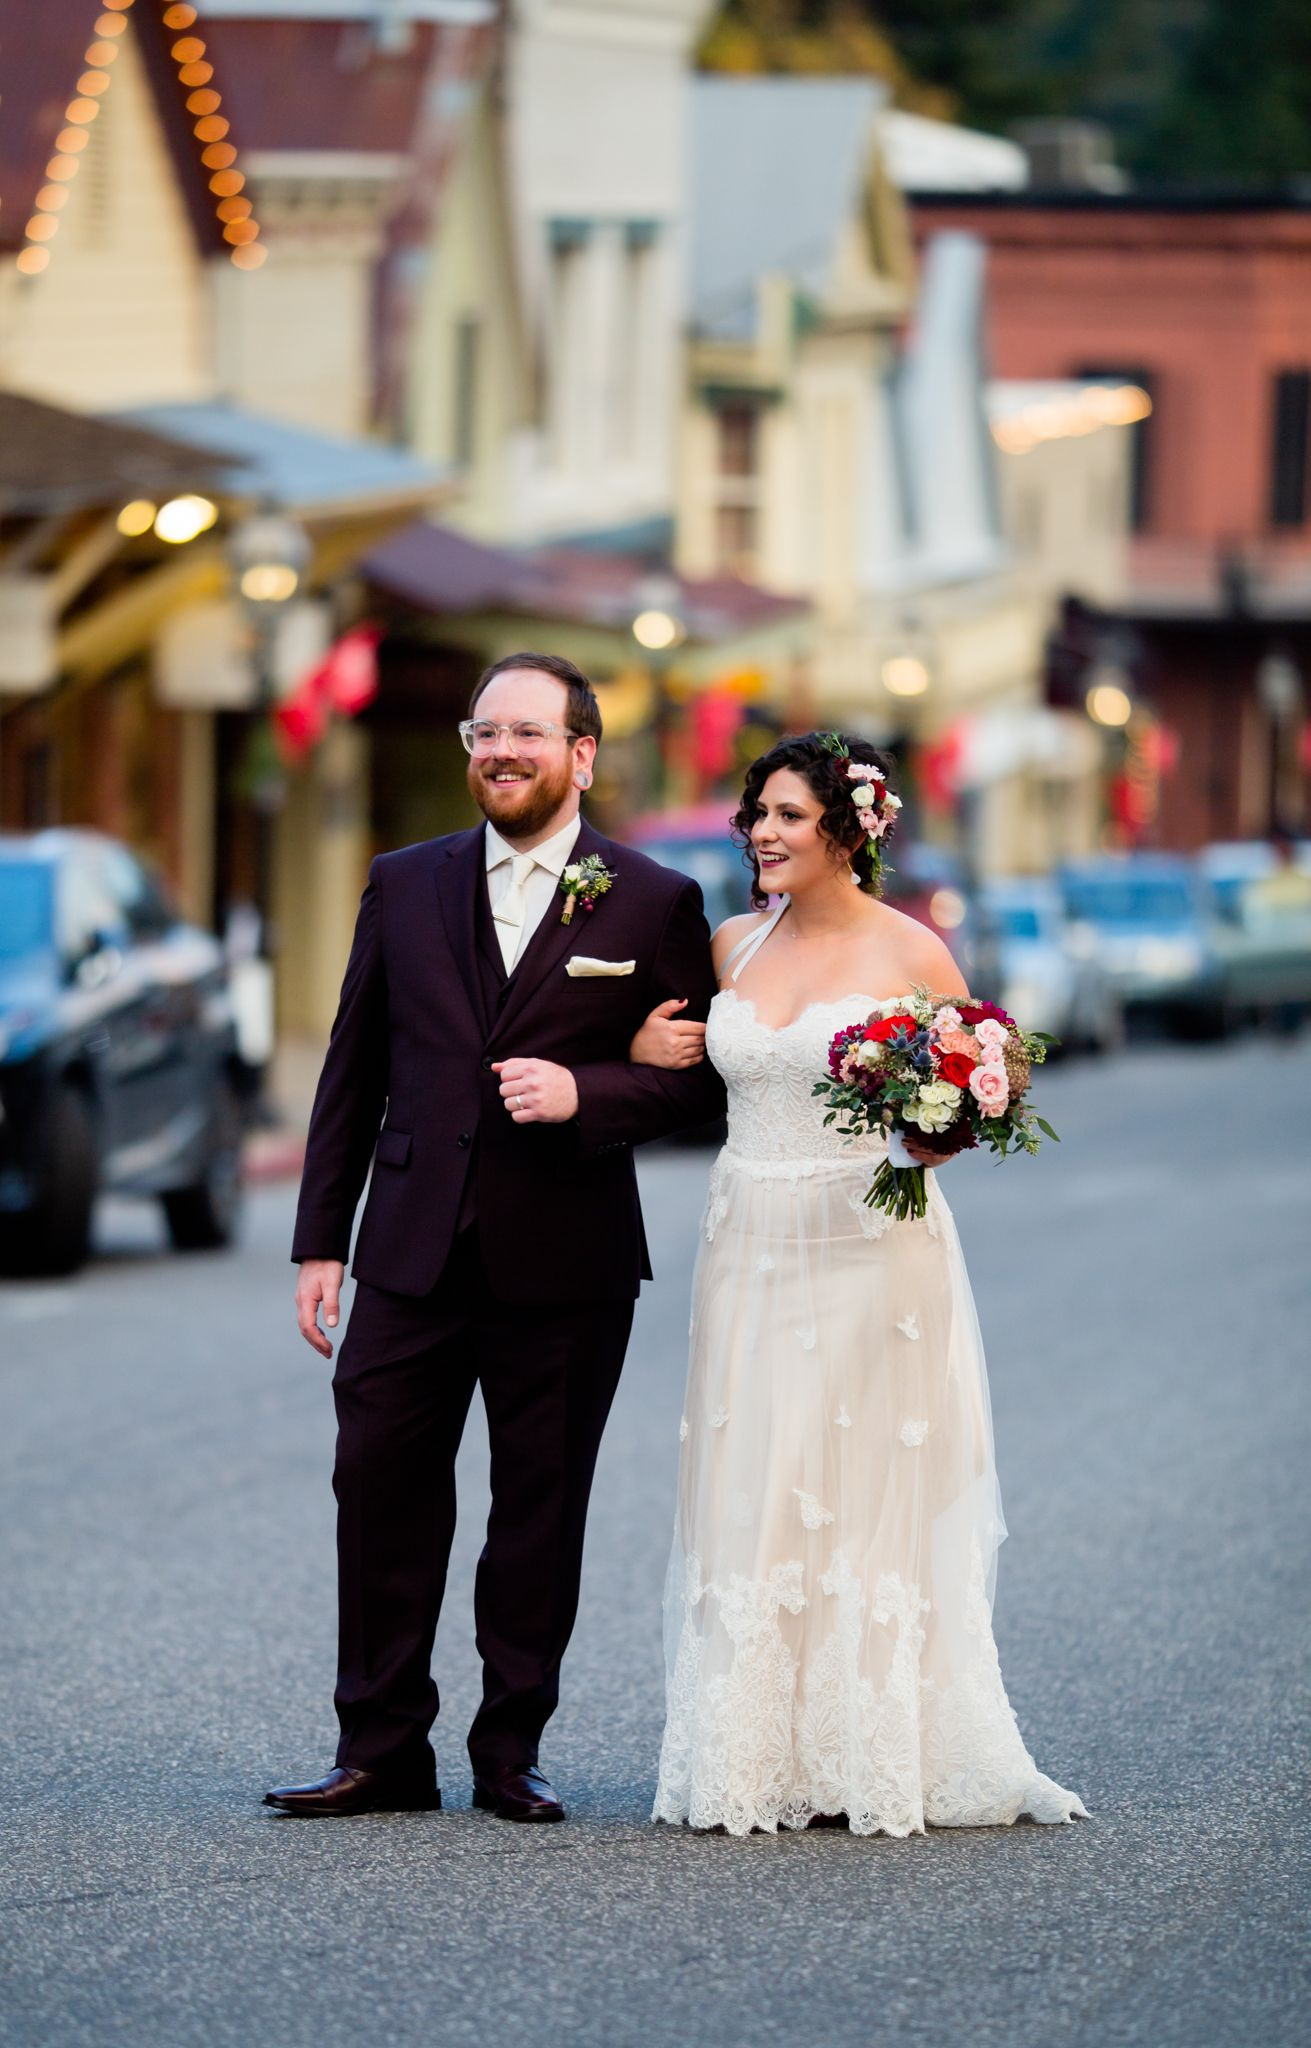 wedding couple in nevada city,nevada county.